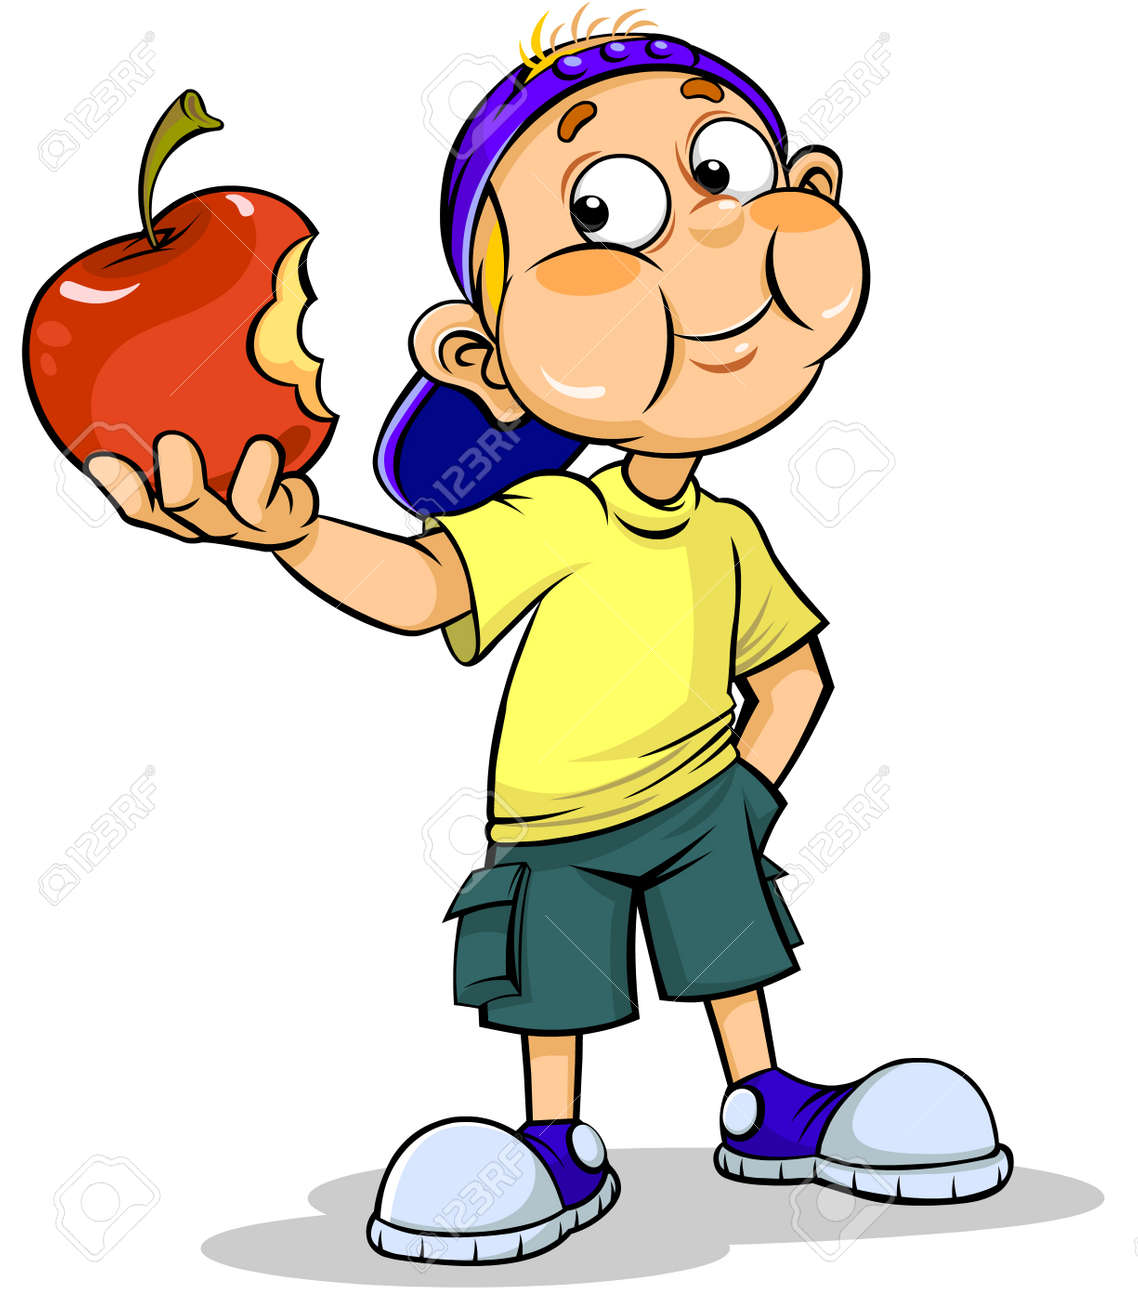 Image result for girl eating apple clipart